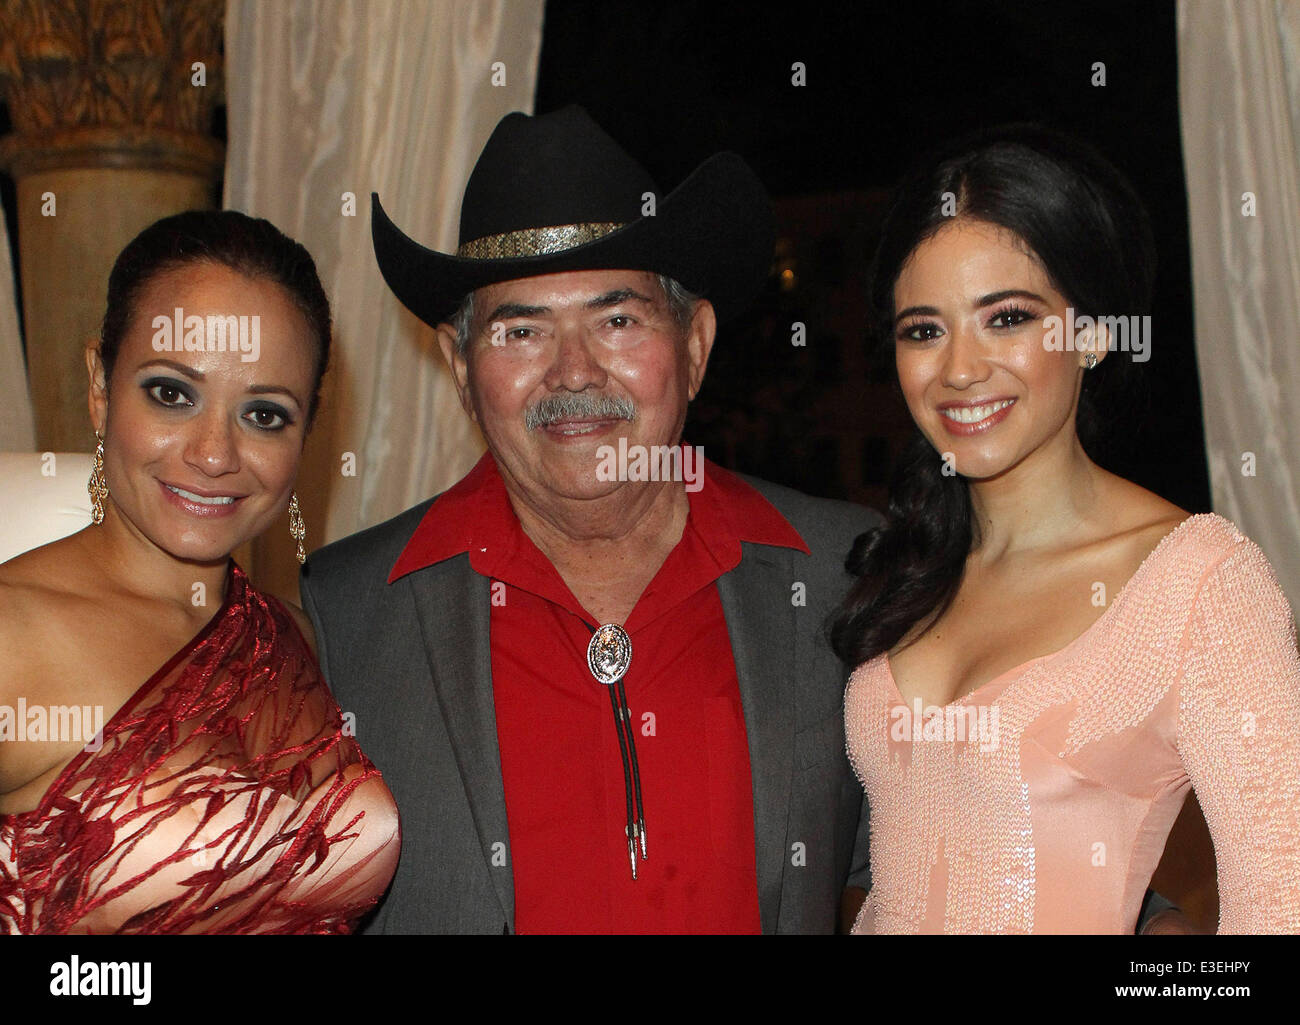 Enrique Longoria Jr High Resolution Stock Photography And Images Alamy